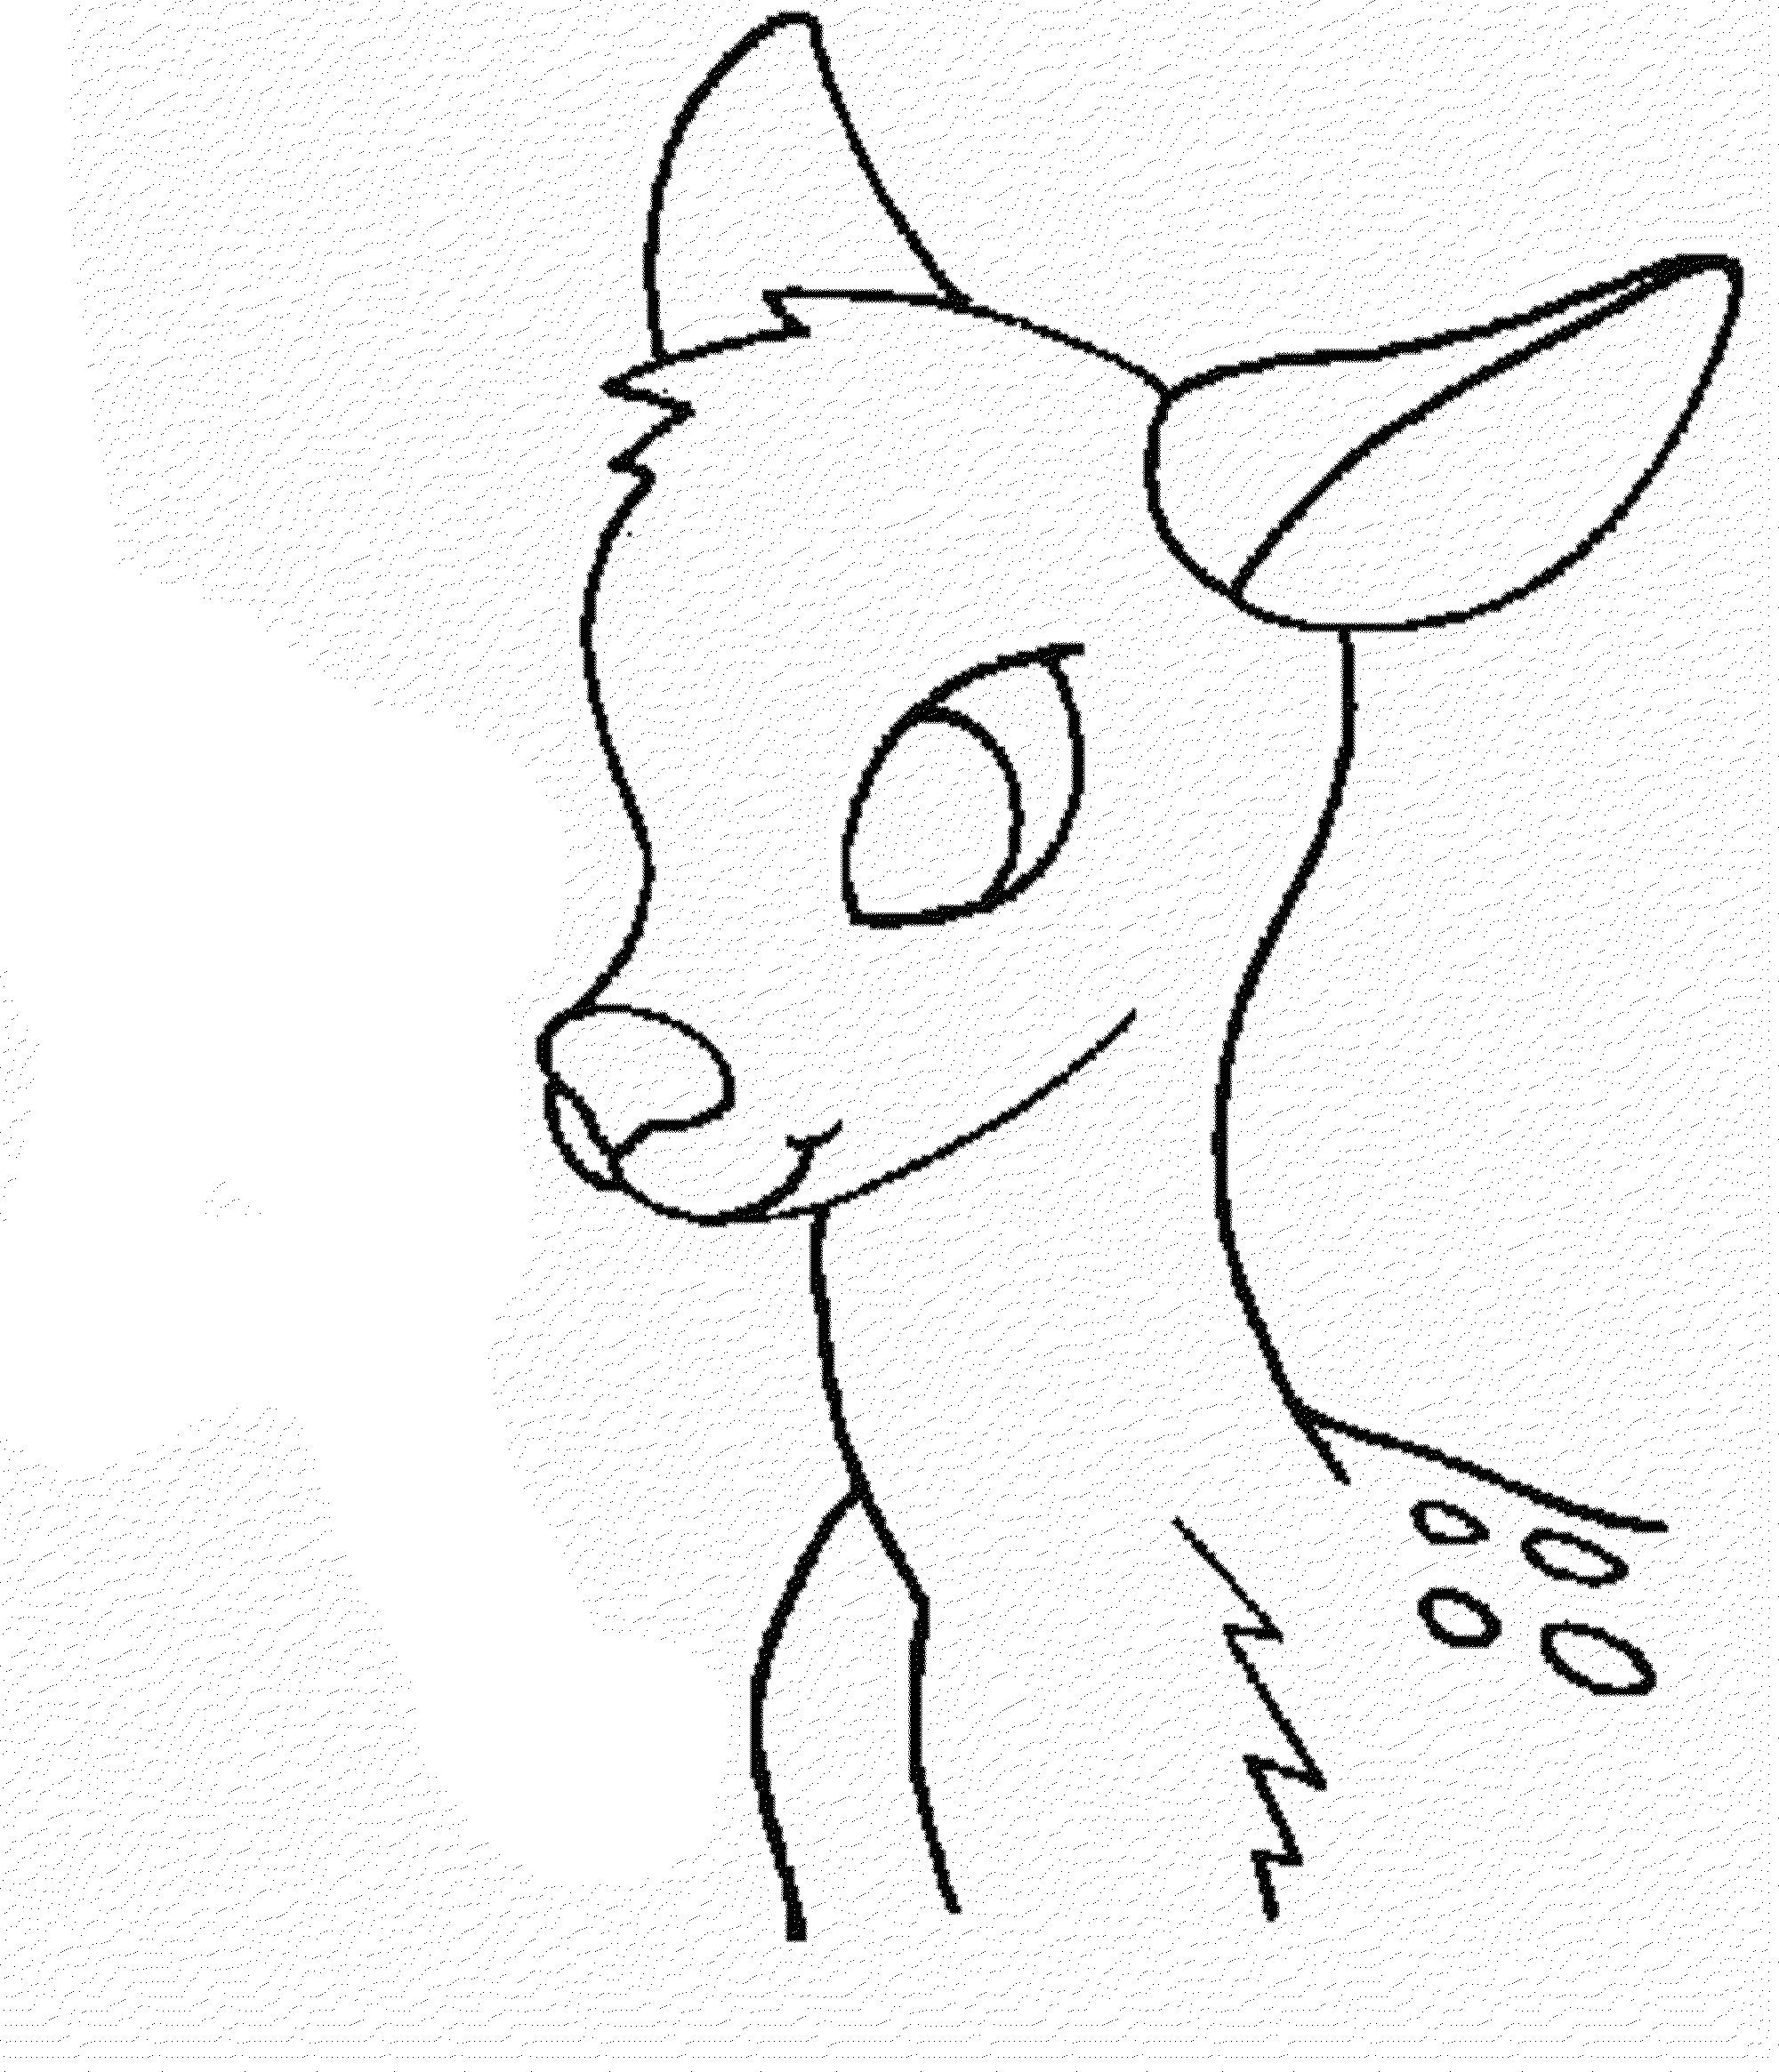 Reindeer Head Drawing at GetDrawings.com | Free for personal ...